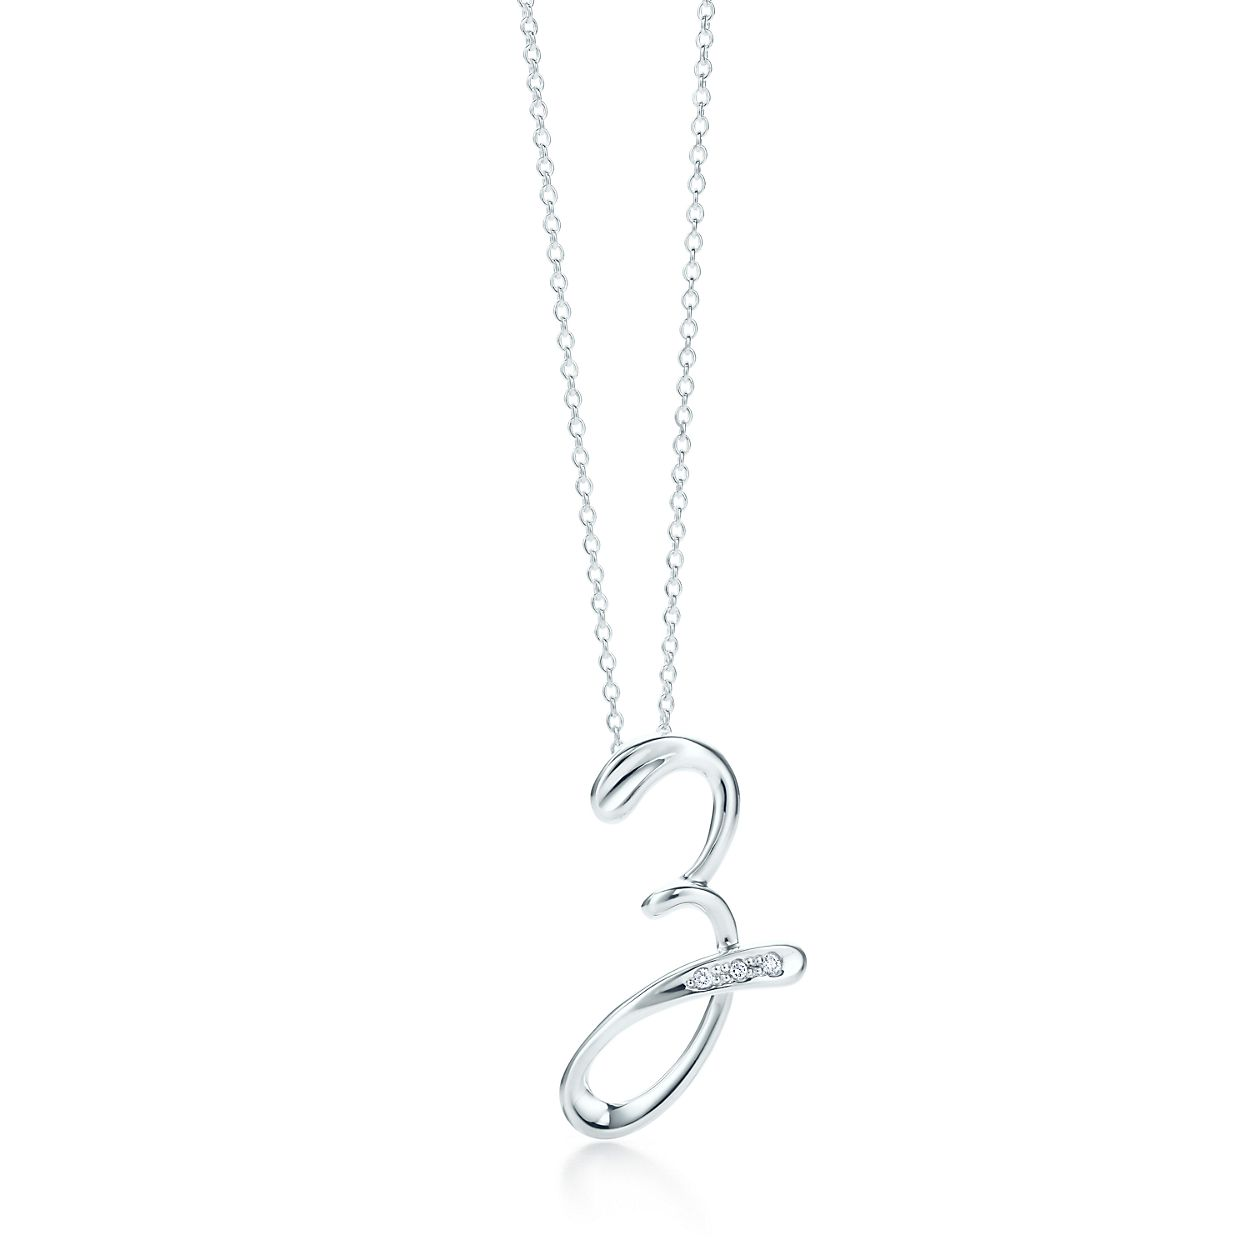 Elsa Peretti Alphabet pendant in silver with diamonds Letters A-Z available - Size Z Tiffany & Co. yAI2O4BVnh